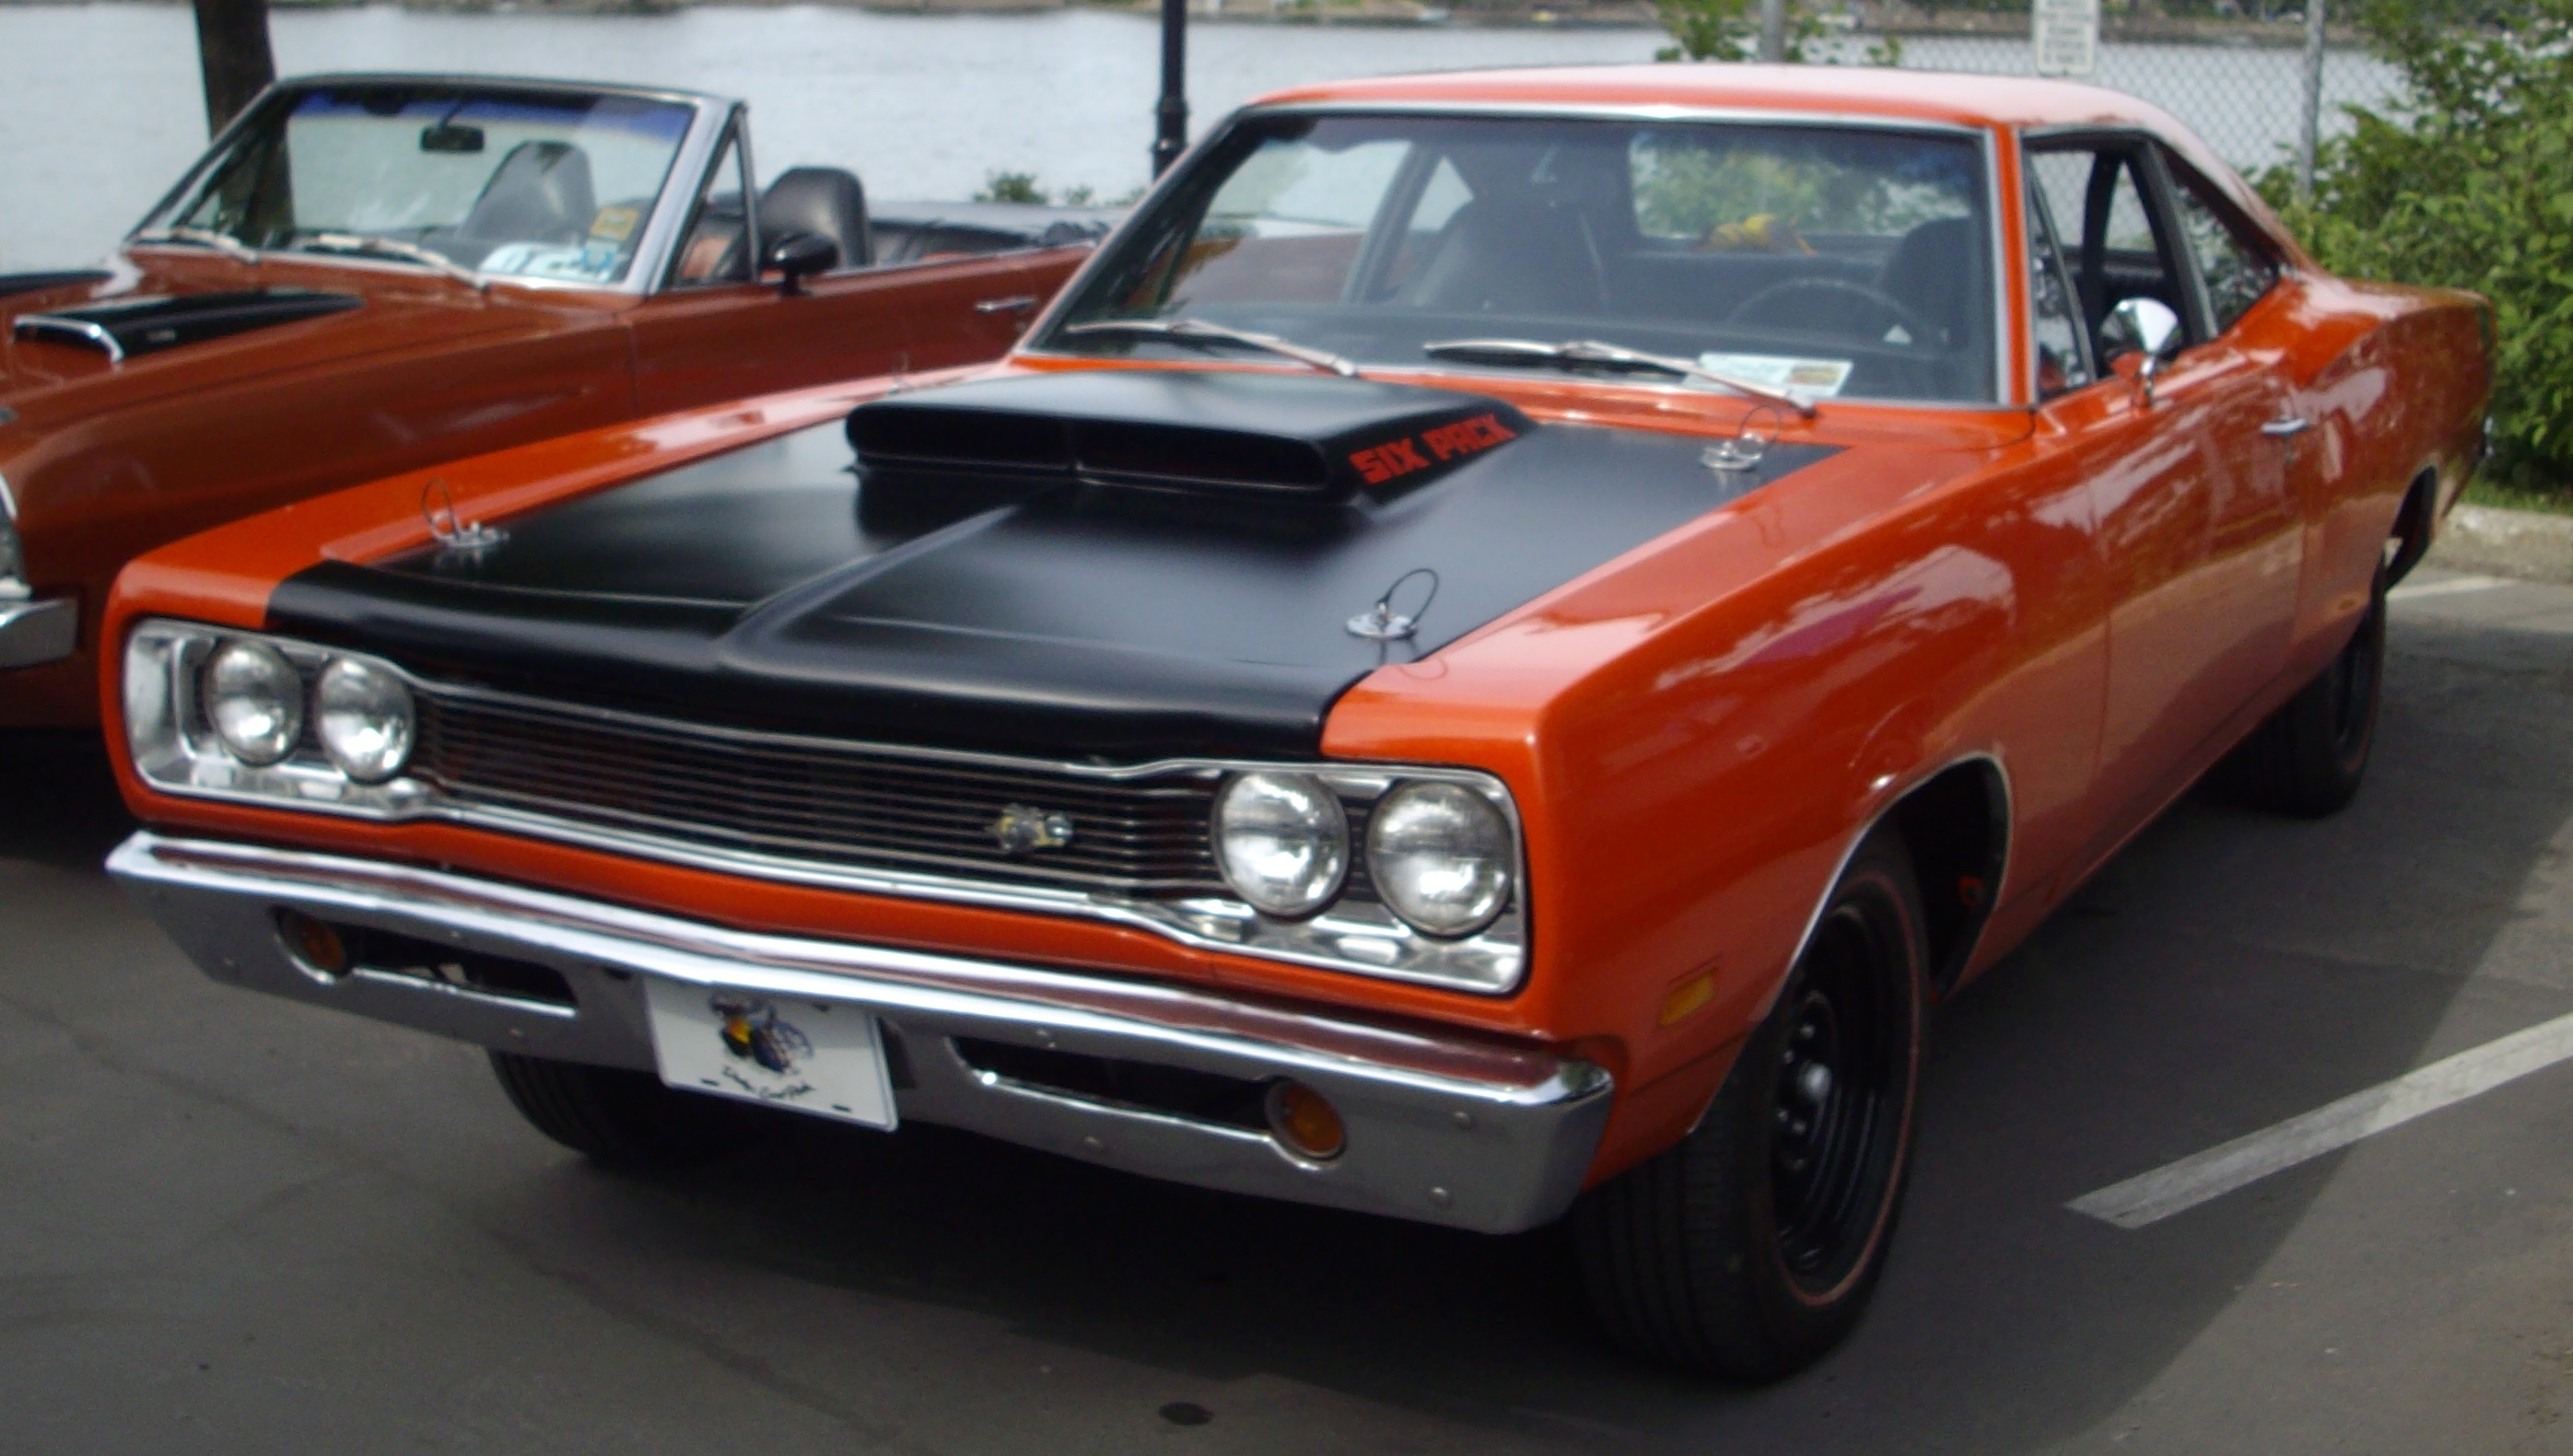 Mopar Muscle Cars For Sale In Ottawa Area